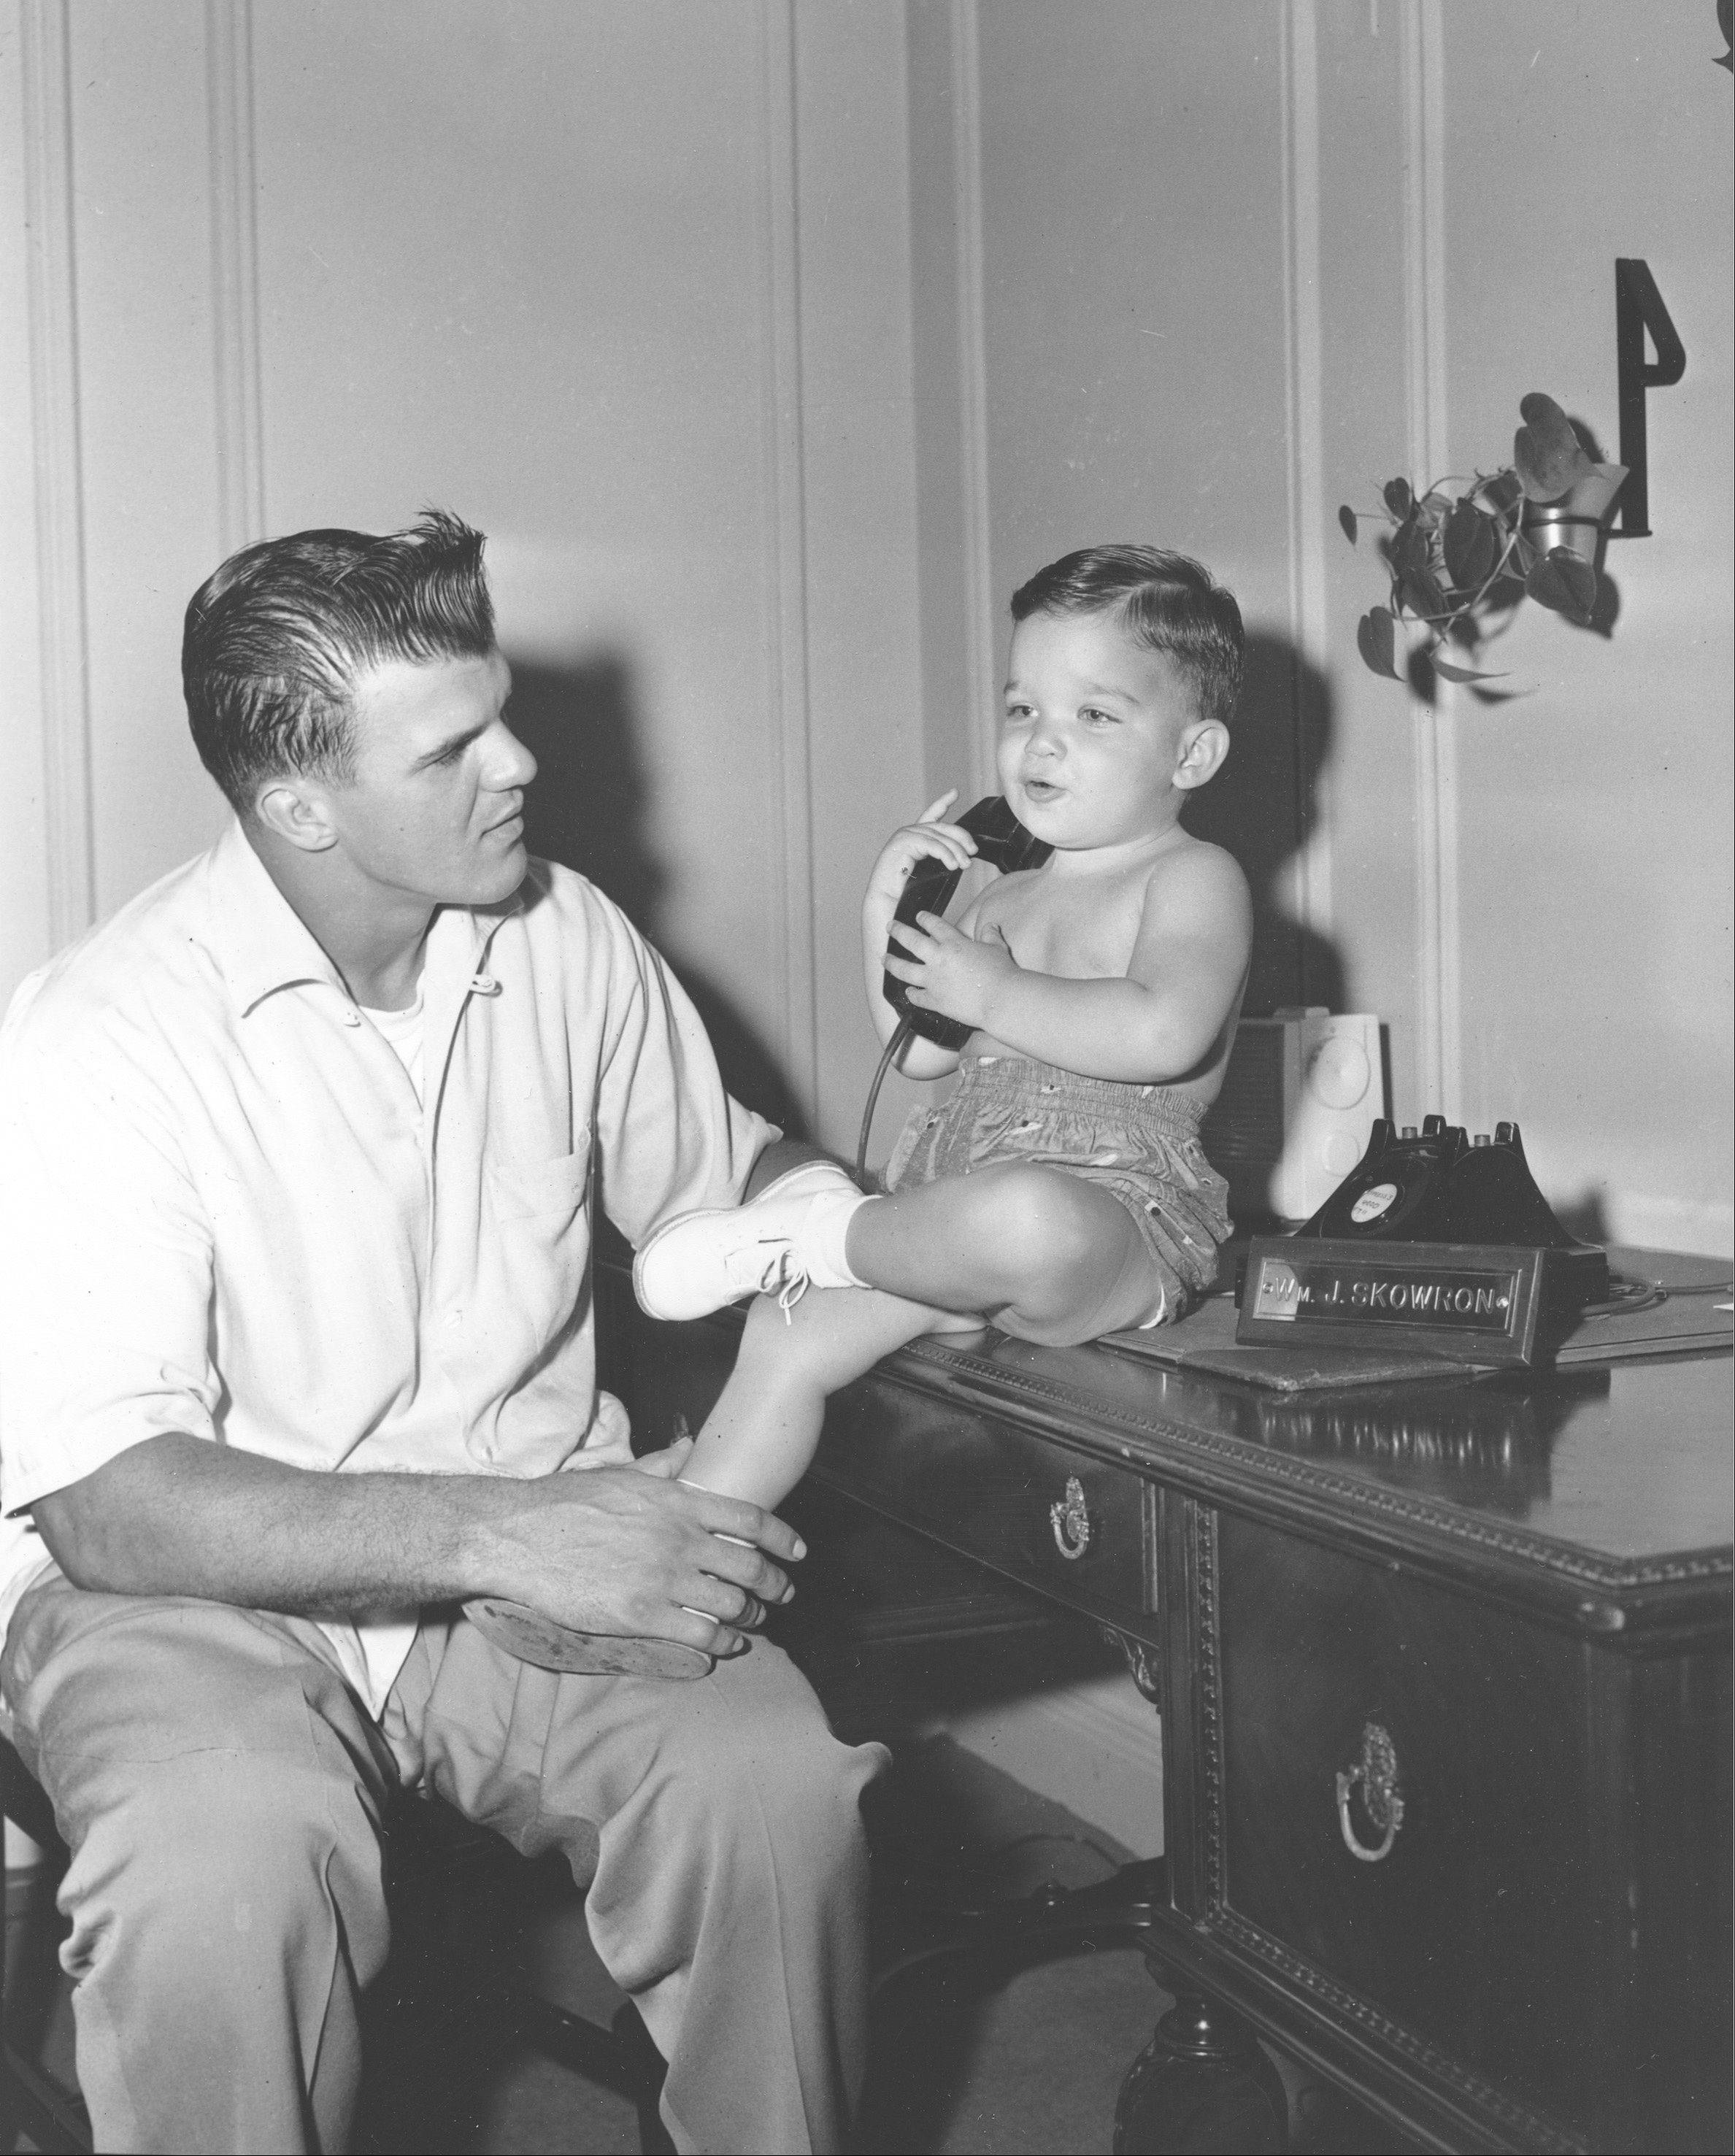 New York Yankees first baseman William J. Skowron is shown with his son at their Concourse Plaza Hotel home in New York City, Aug. 5, 1955.